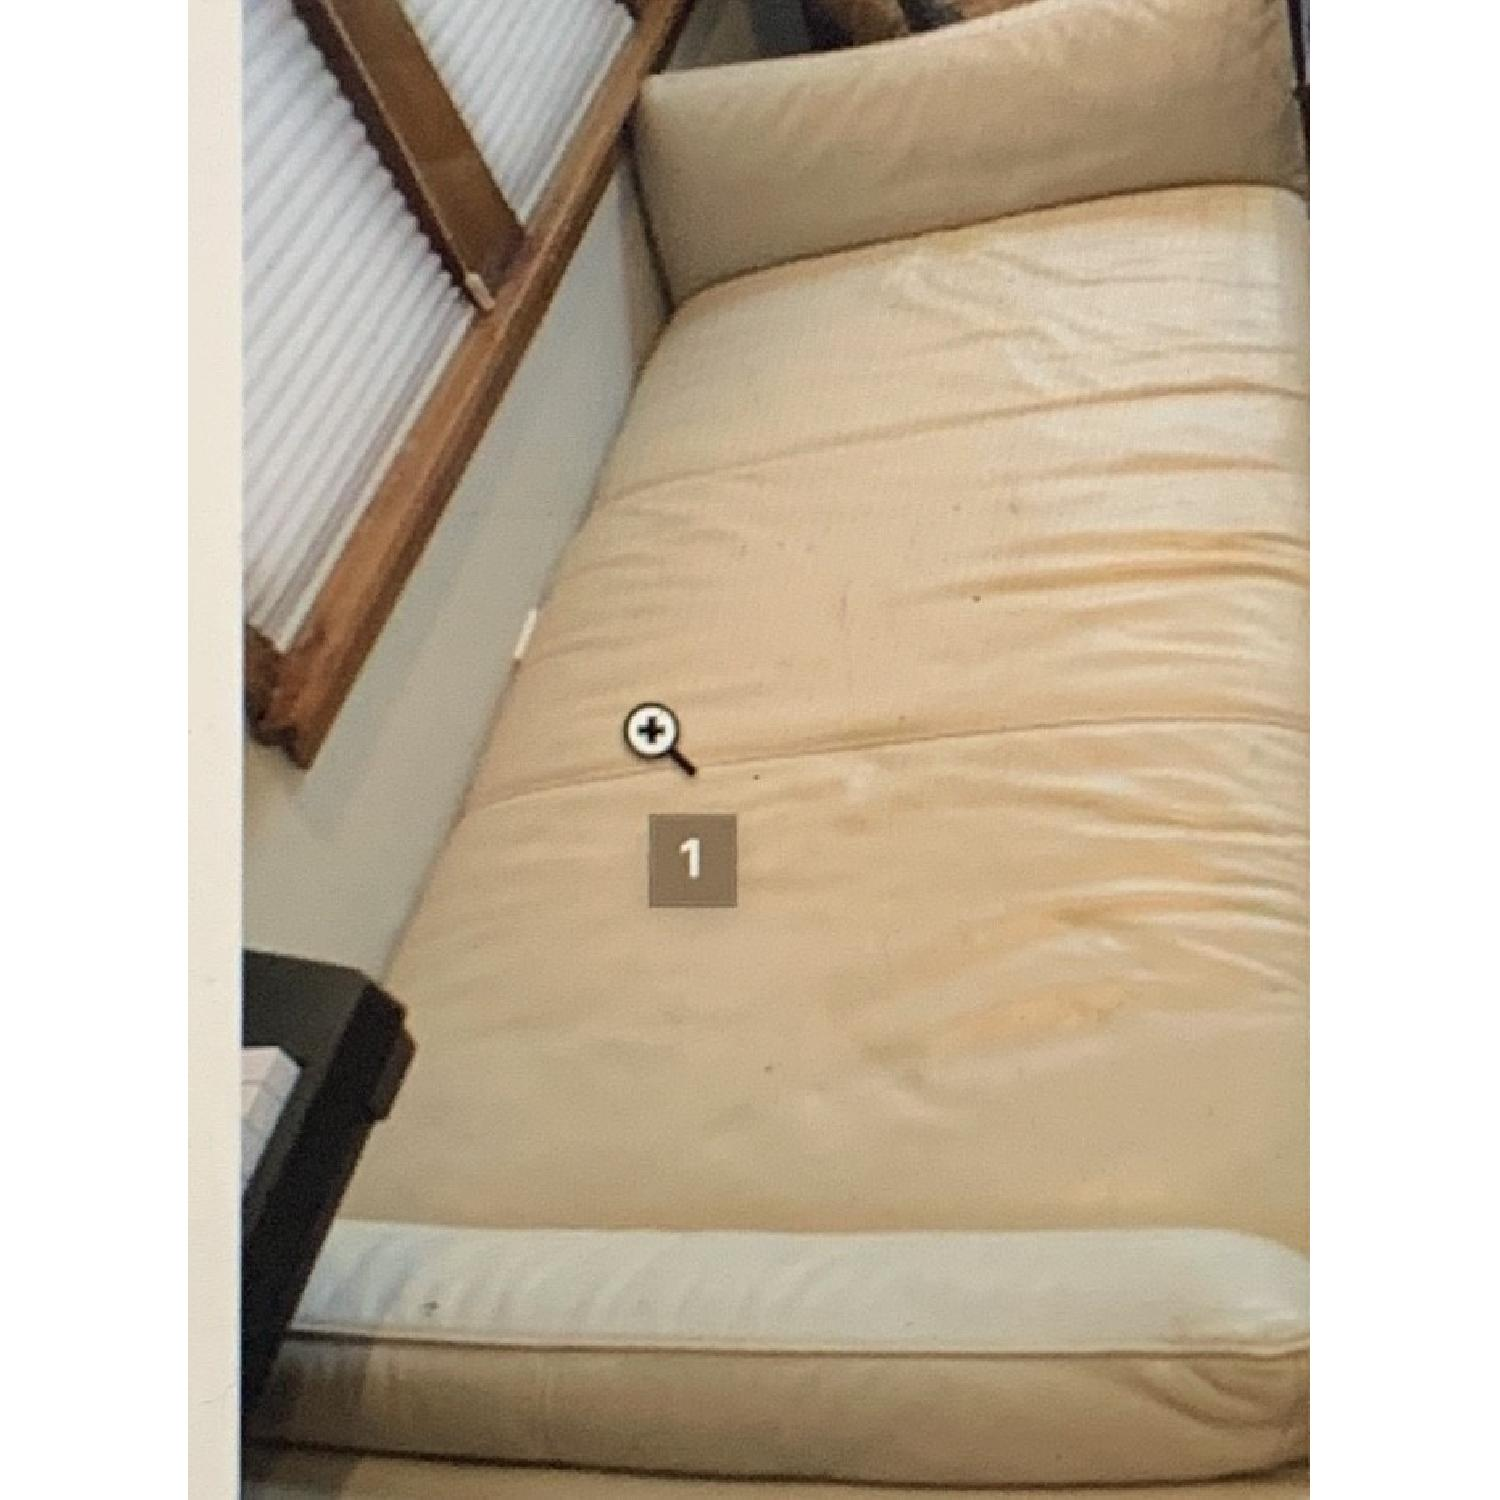 Italsofa Cream Leather Daybed/Chaise Lounge-0